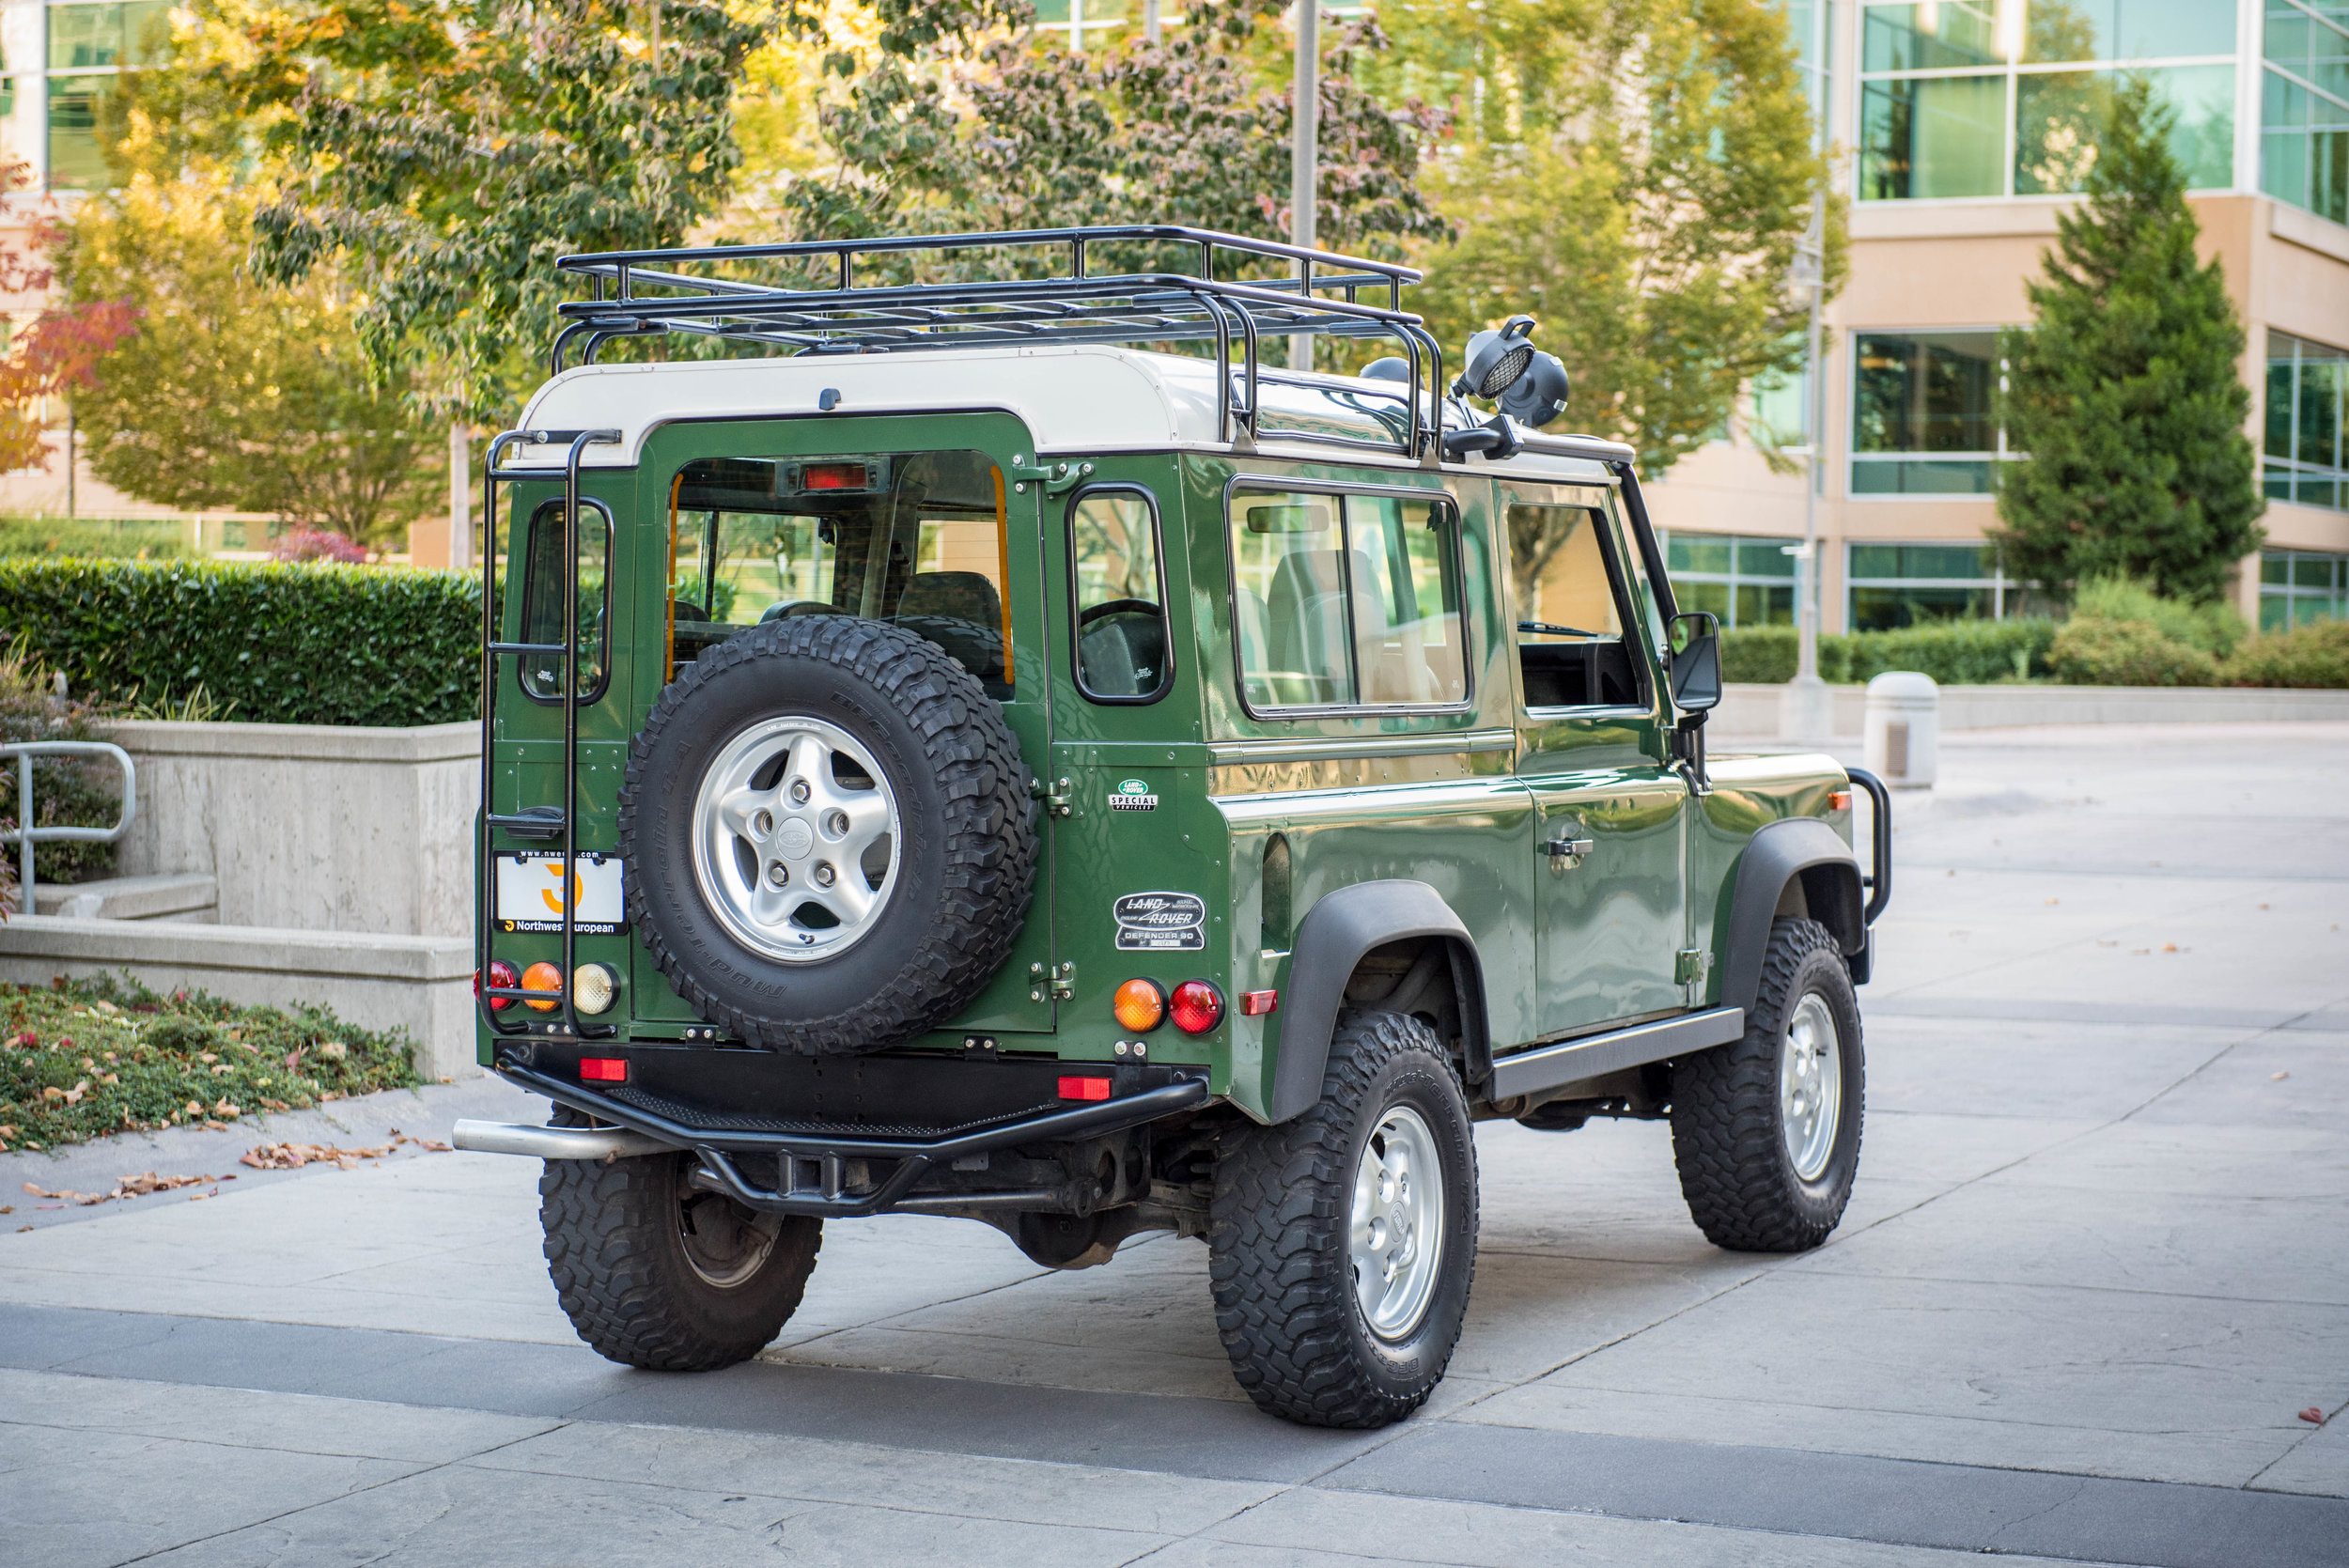 details bowler fast htm wagon defender land station landrover home rover stock conversion carsales xs road tires